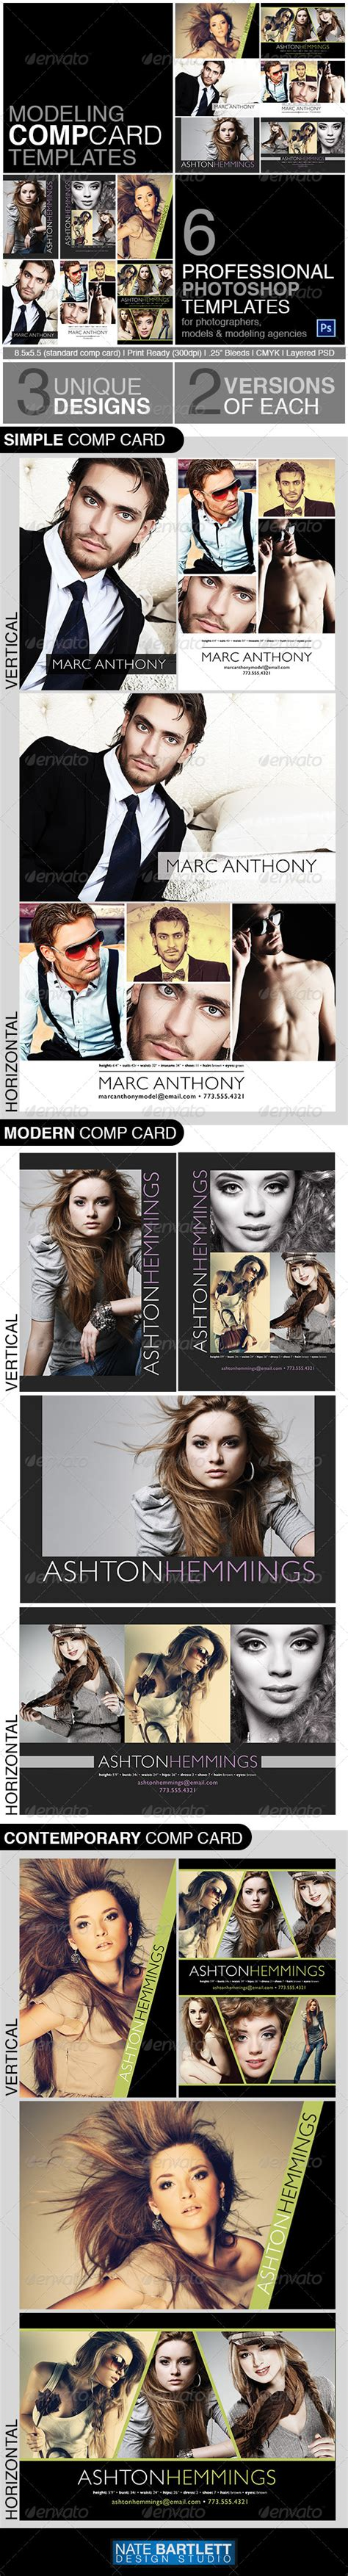 model comp card template kit model comp card template kit graphicriver